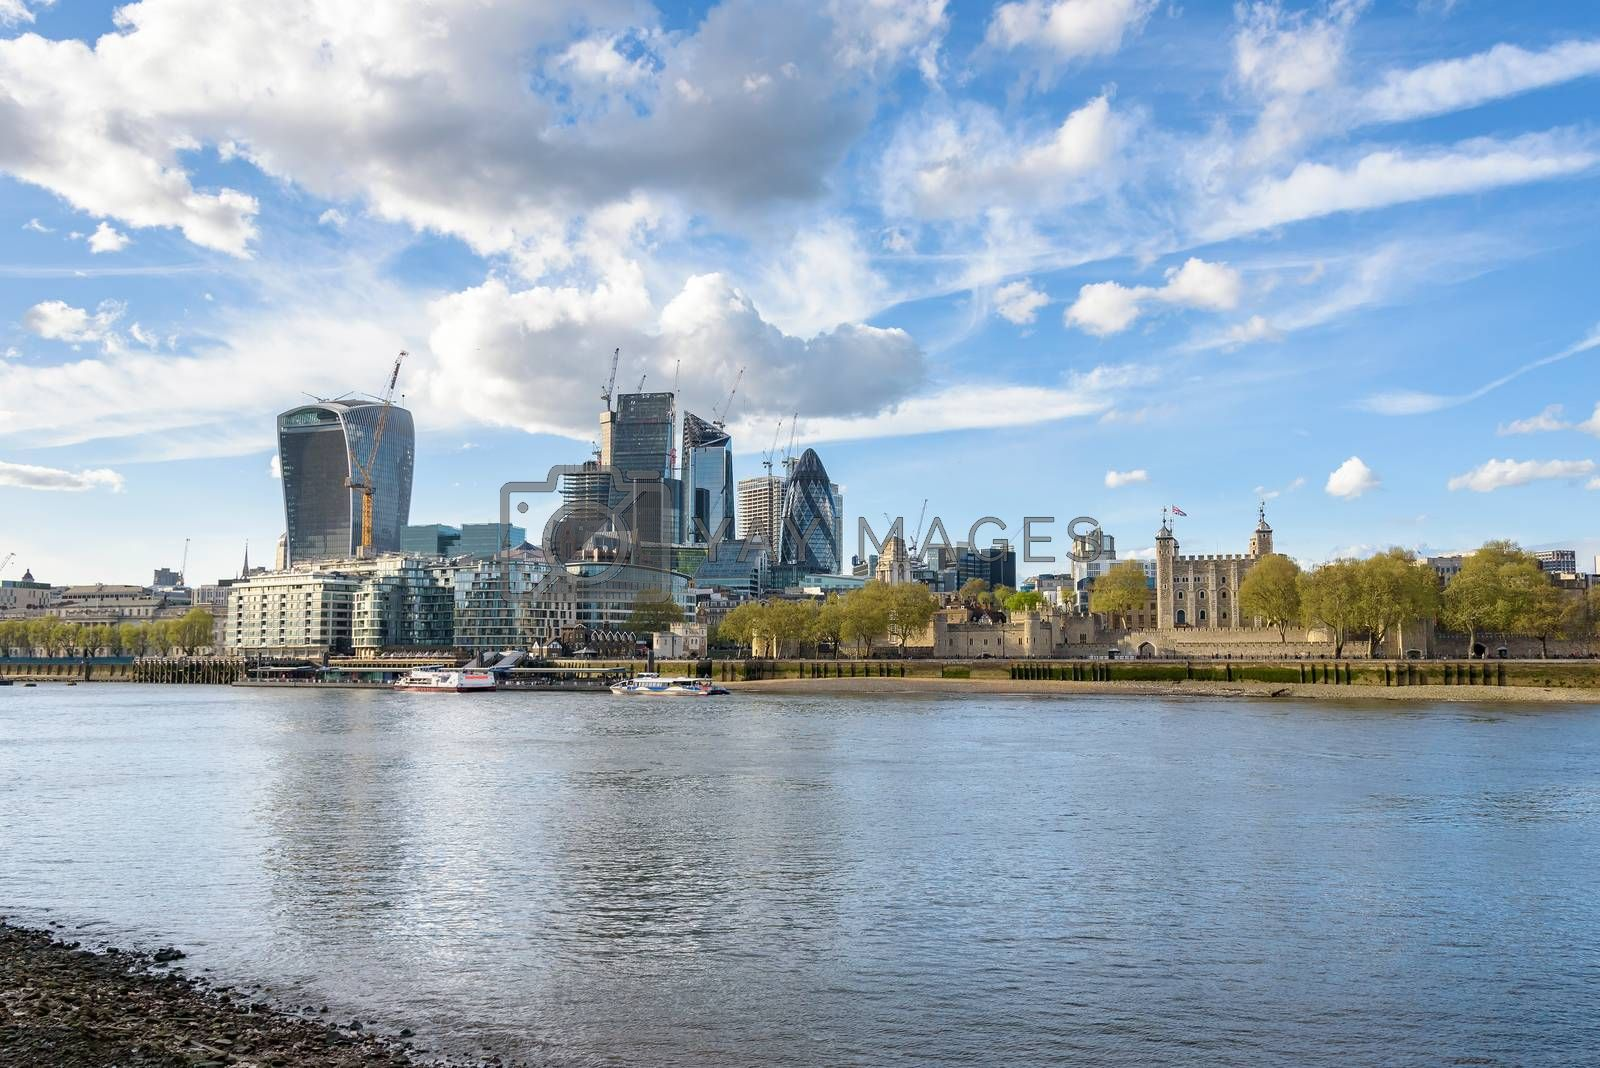 Skyline of London with Tower of London and City buildings